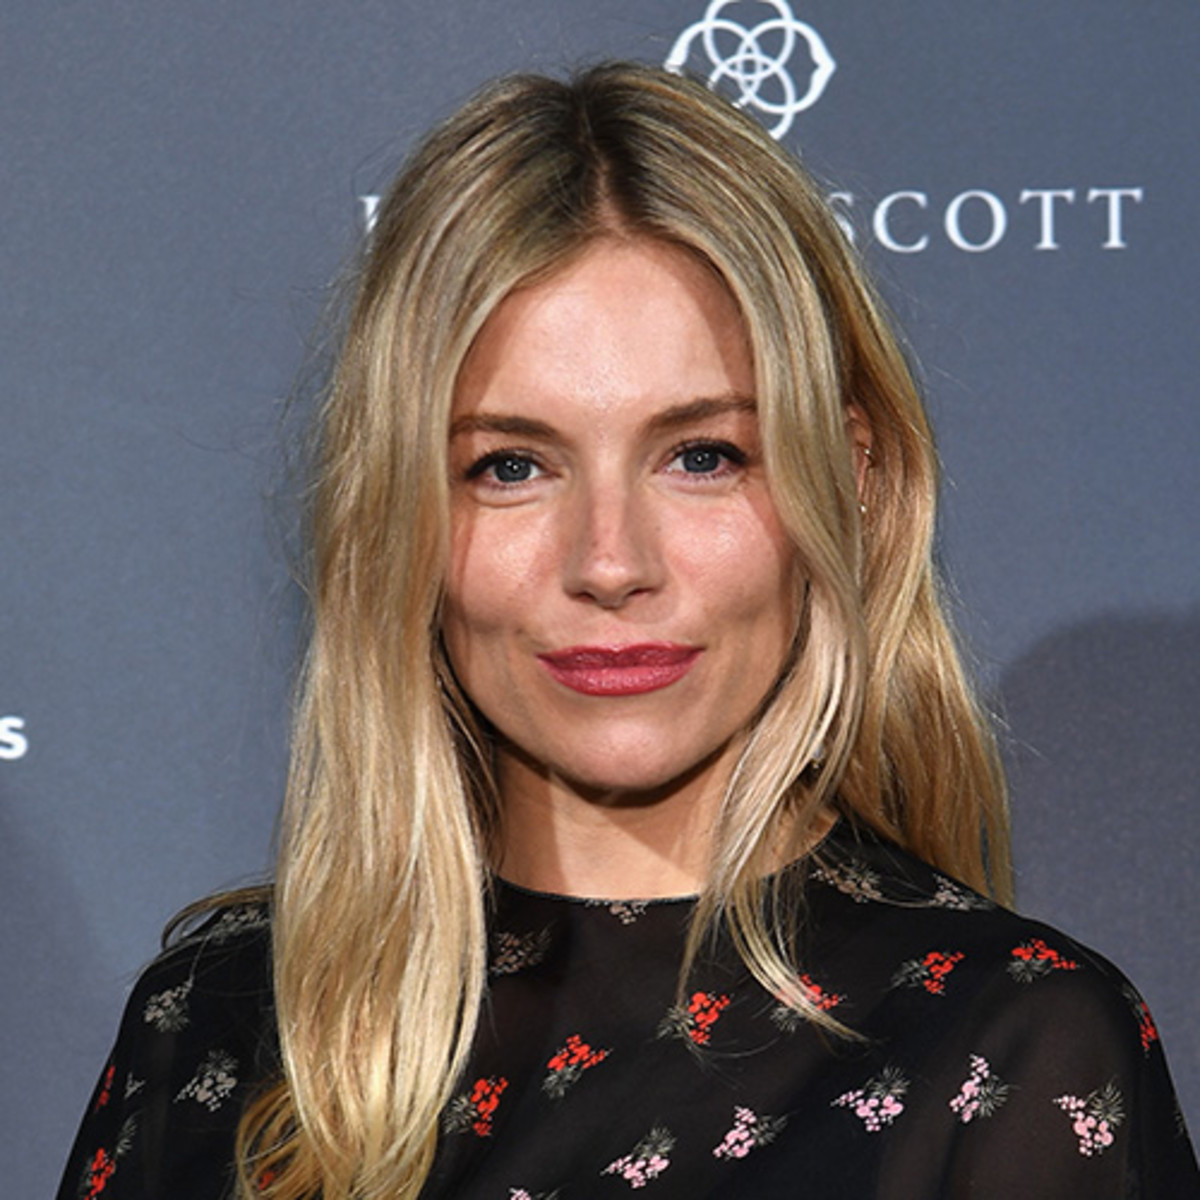 Cleavage Sienna Miller (born 1981 (born in New York City  nude (66 photos), Snapchat, braless